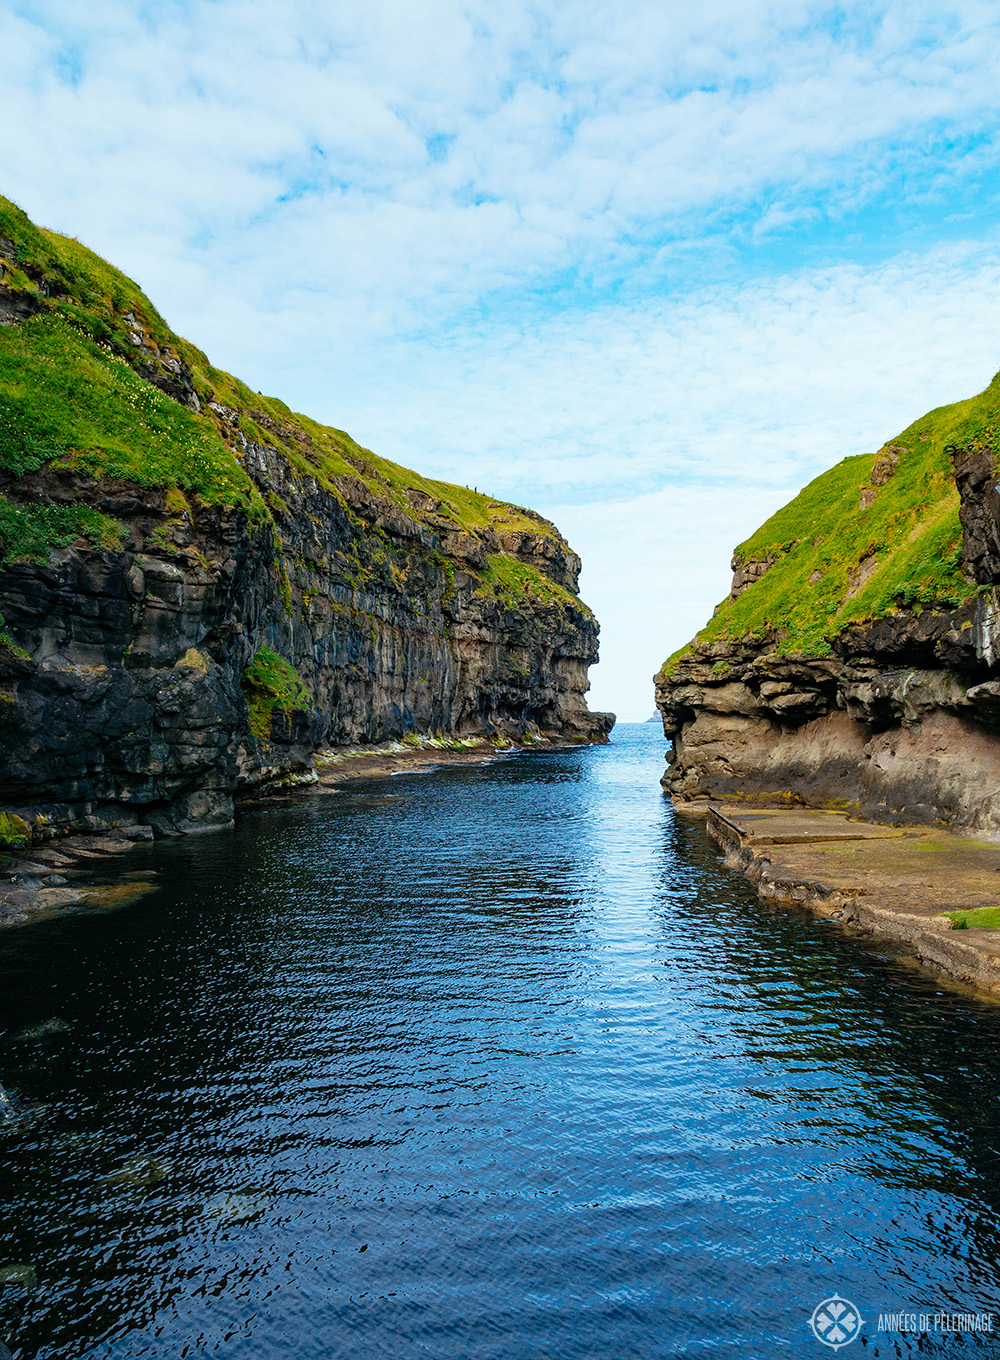 The flooded gorge at the village of Gjógv in Faroe Islands